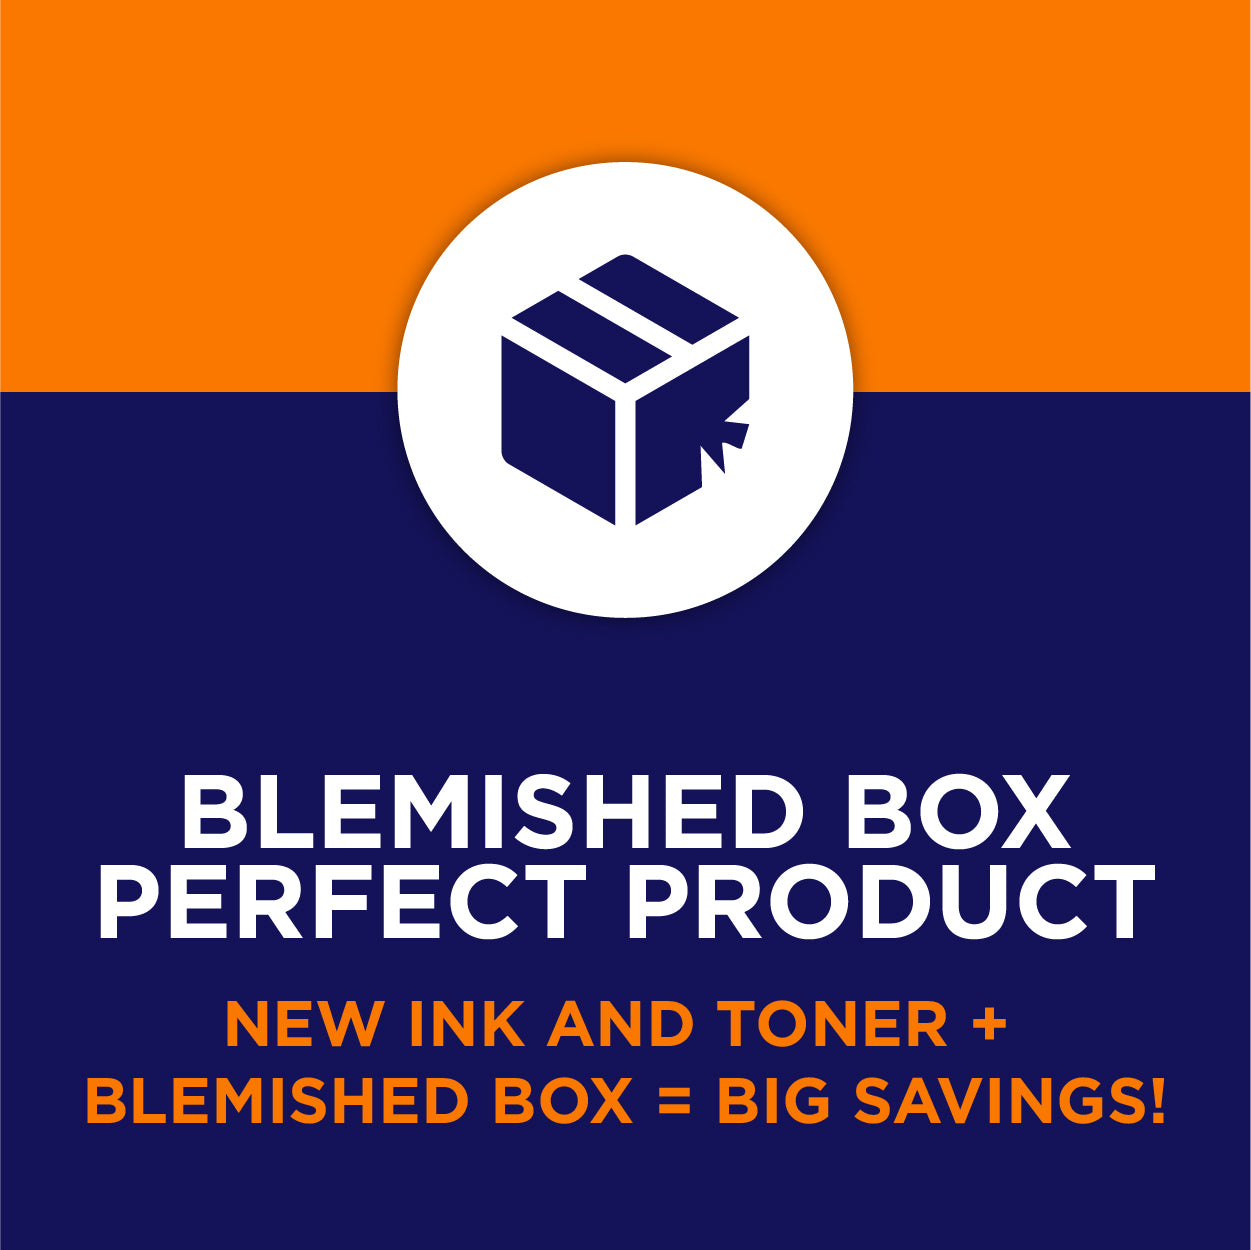 New Ink and Toner plus blemished box equals big savings